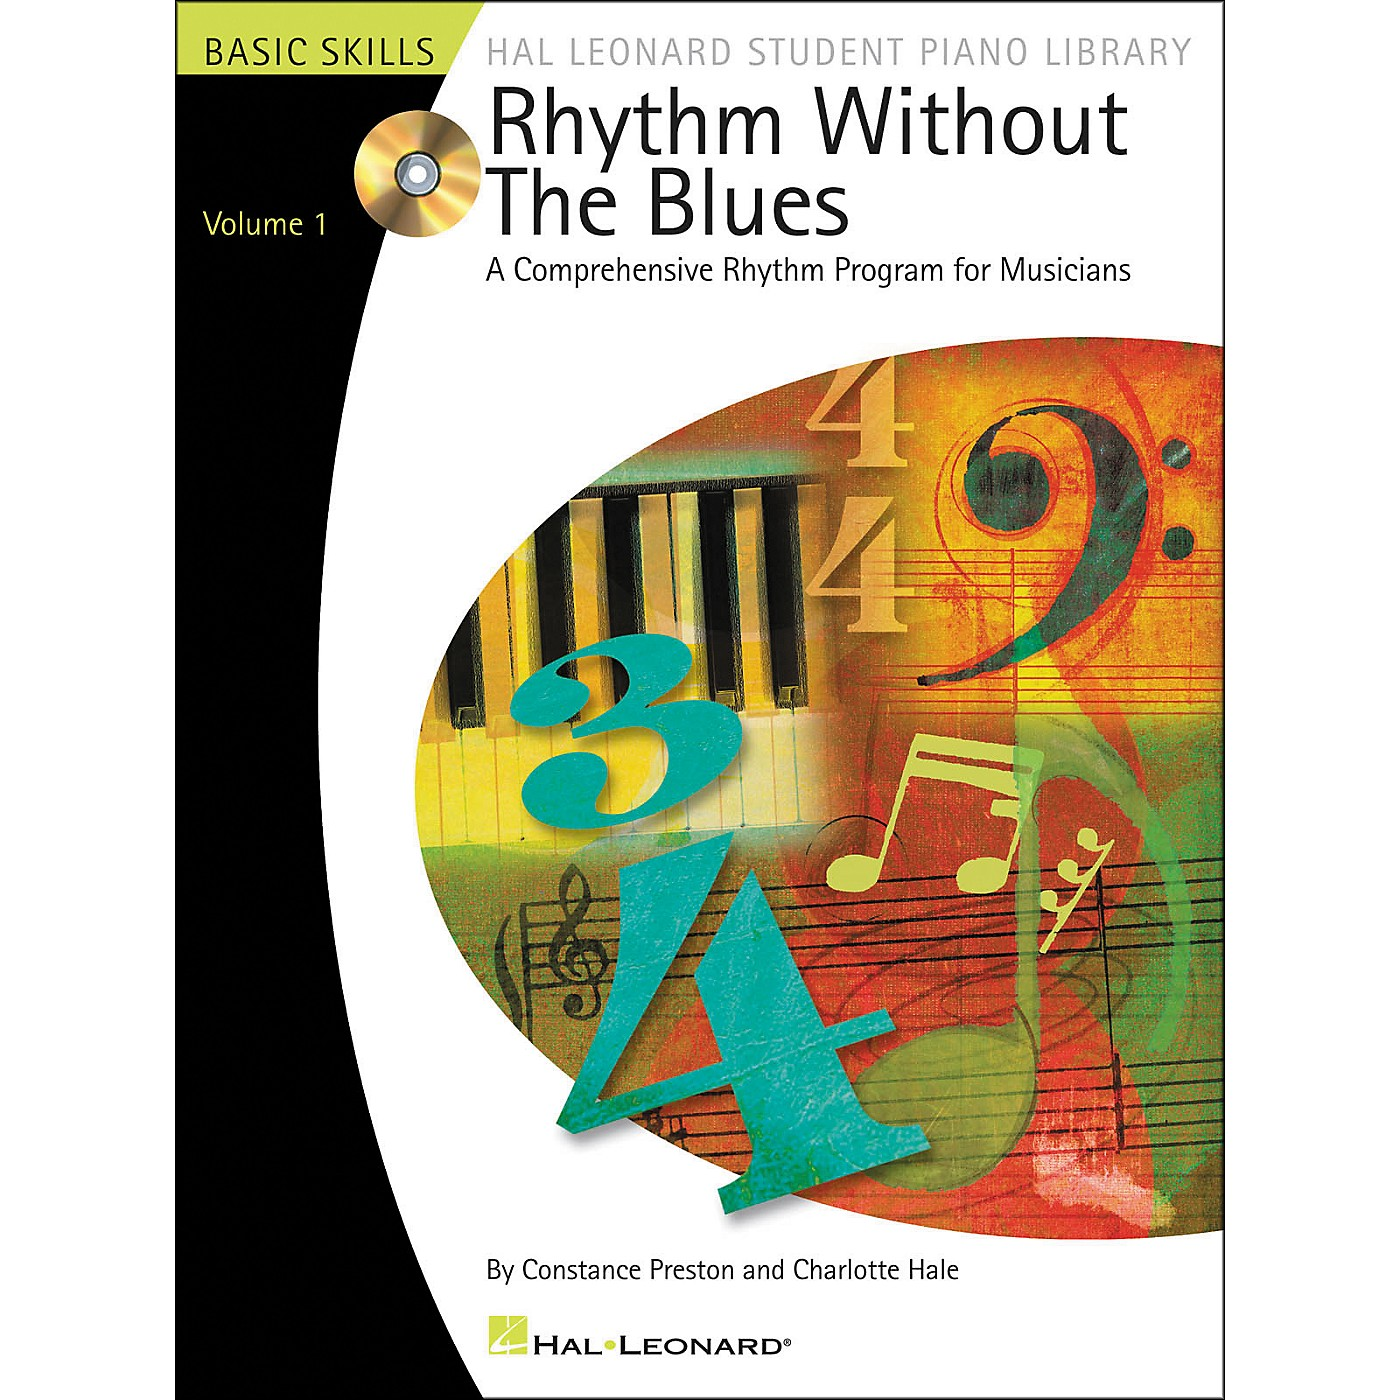 Hal Leonard Rhythm Without The Blues Book/CD Volume 1 Hal Leonard Student Piano Library thumbnail